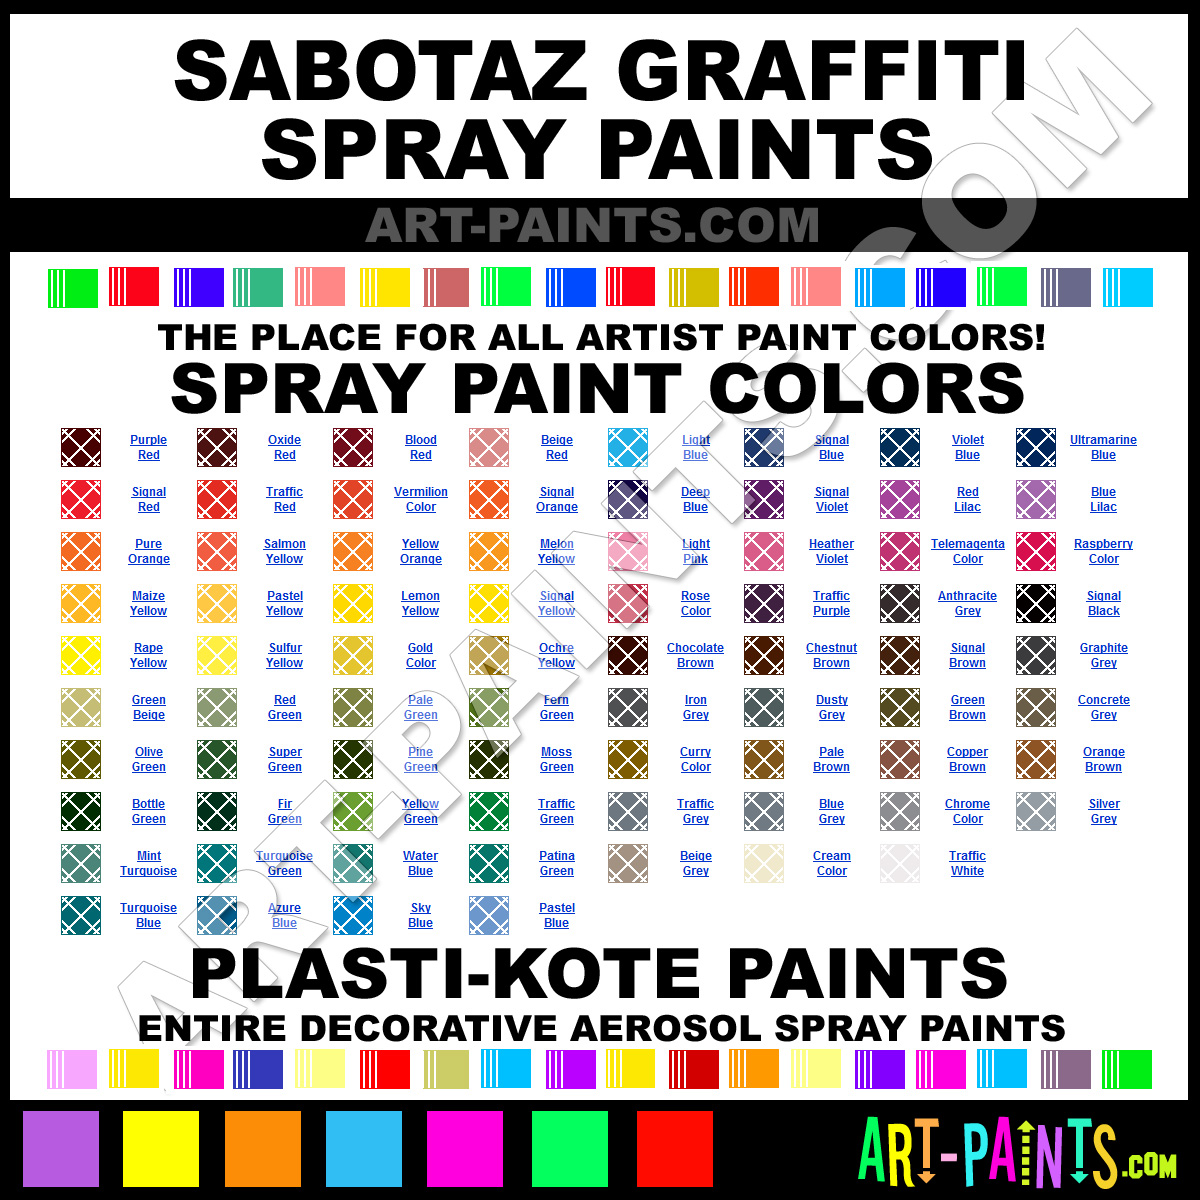 Rape Yellow Graffiti Spray Paints Aerosol Decorative Paints 909 Rape Yellow Paint